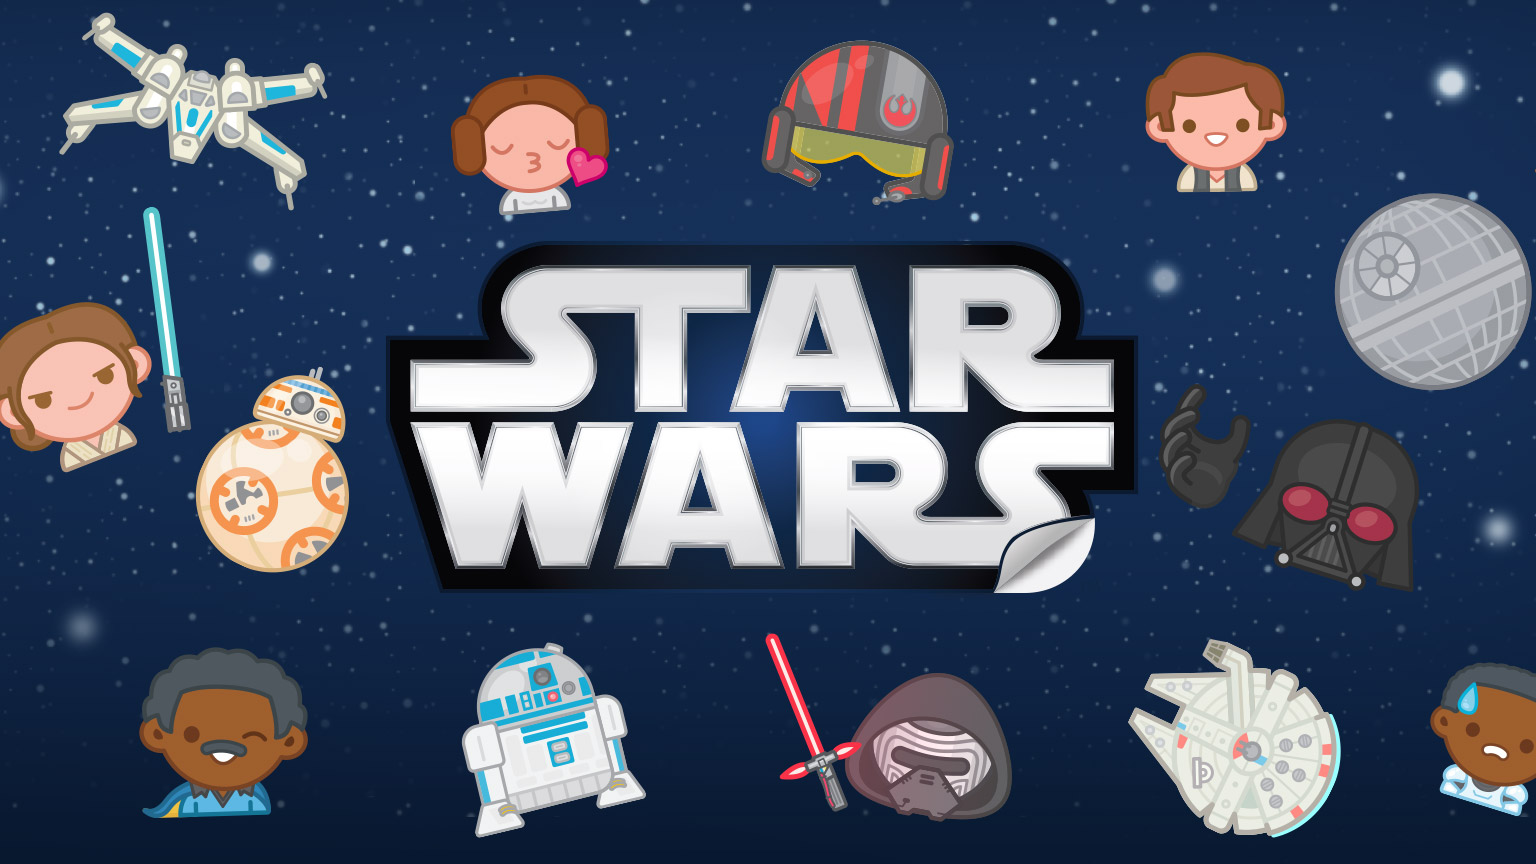 Awaken your messages with exclusive star wars stickers